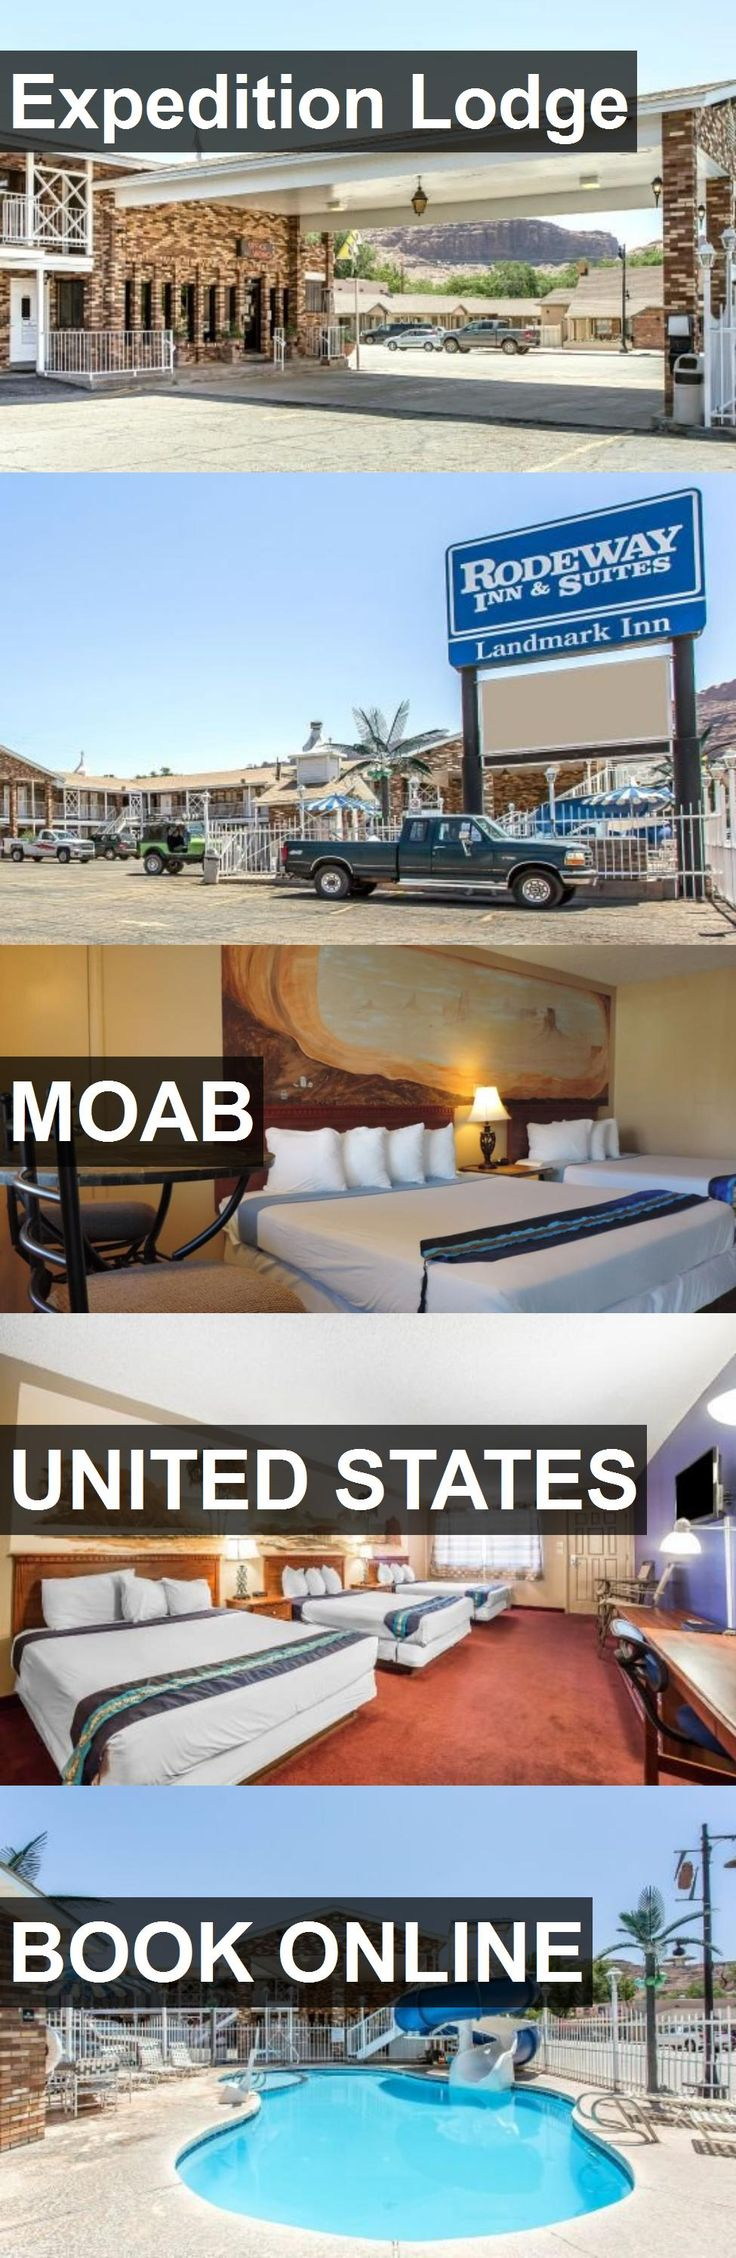 Hotel Expedition Lodge in Moab, United States. For more information, photos, reviews and best prices please follow the link. #UnitedStates #Moab #hotel #travel #vacation